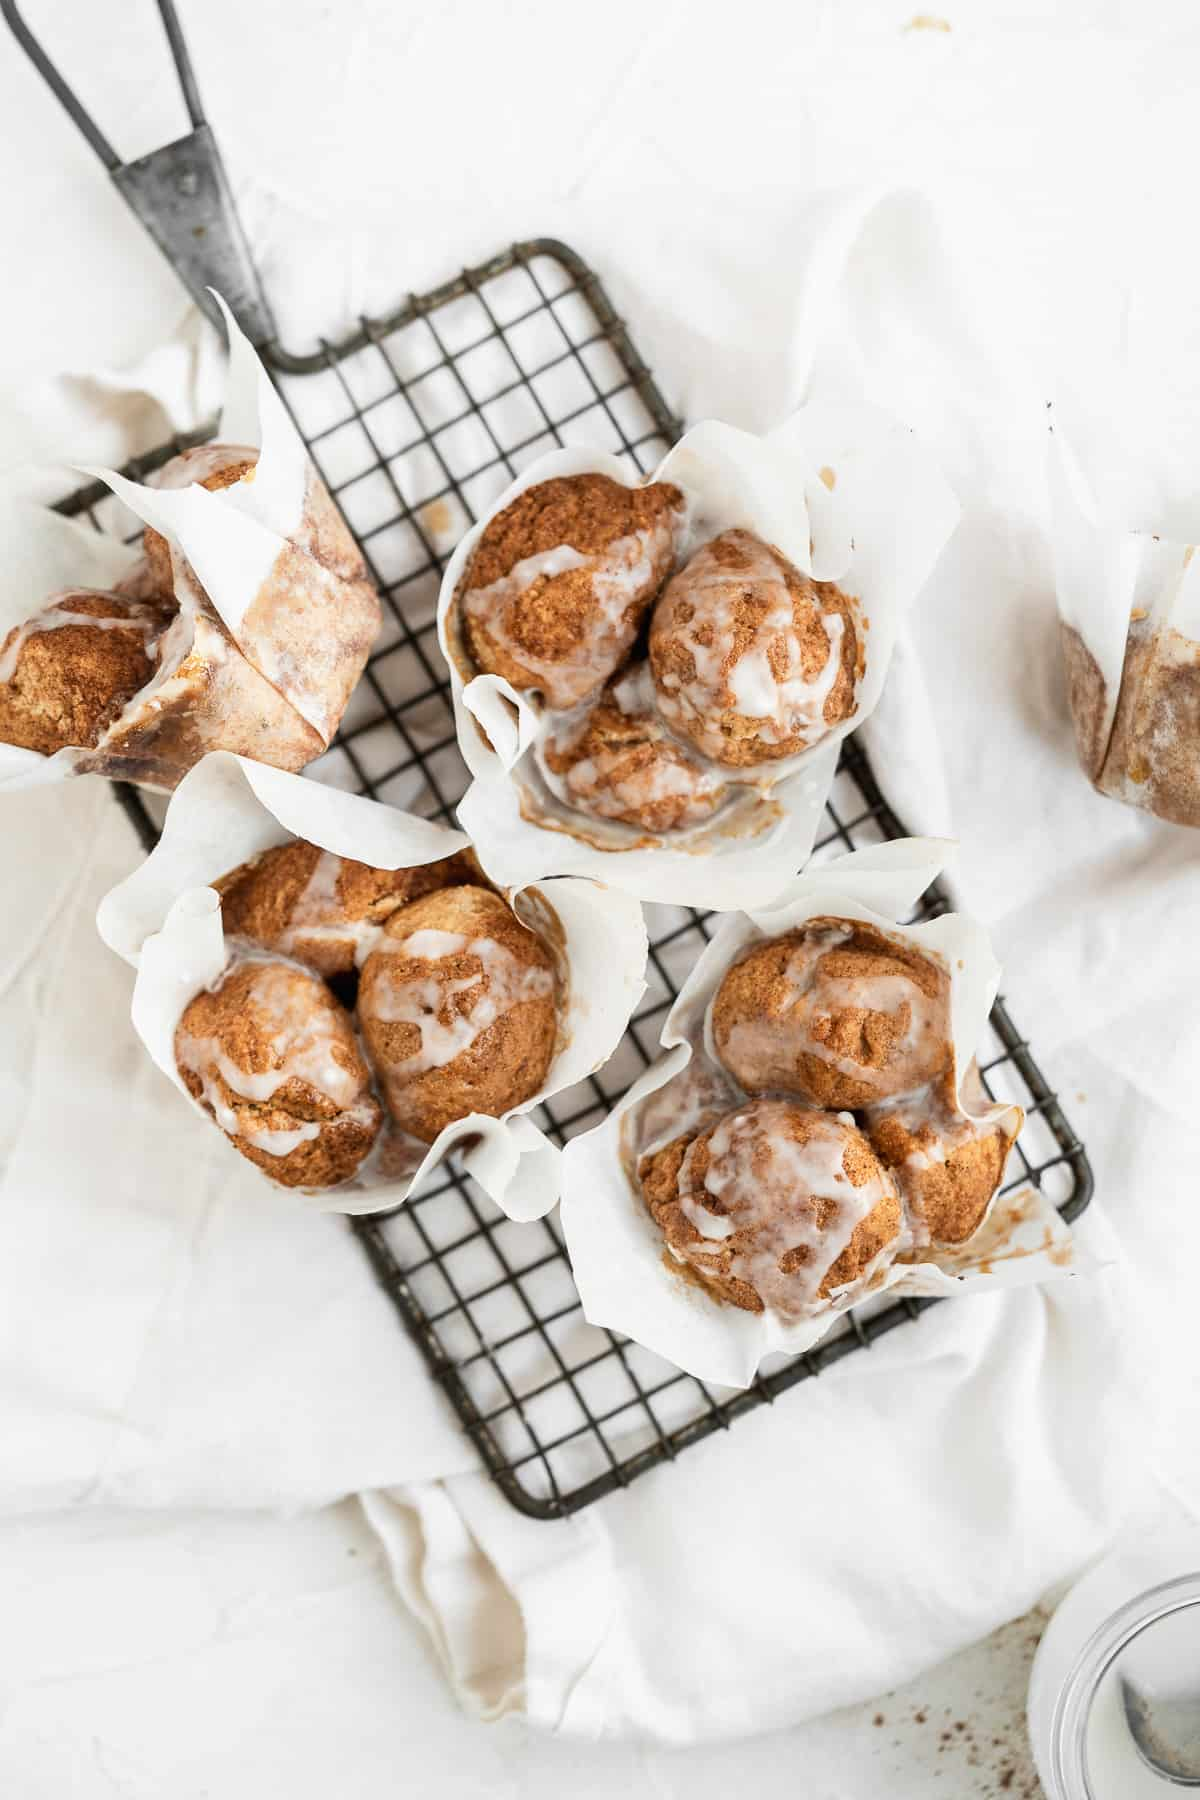 Tan muffins with glaze scattered on a cooling rack with white background.